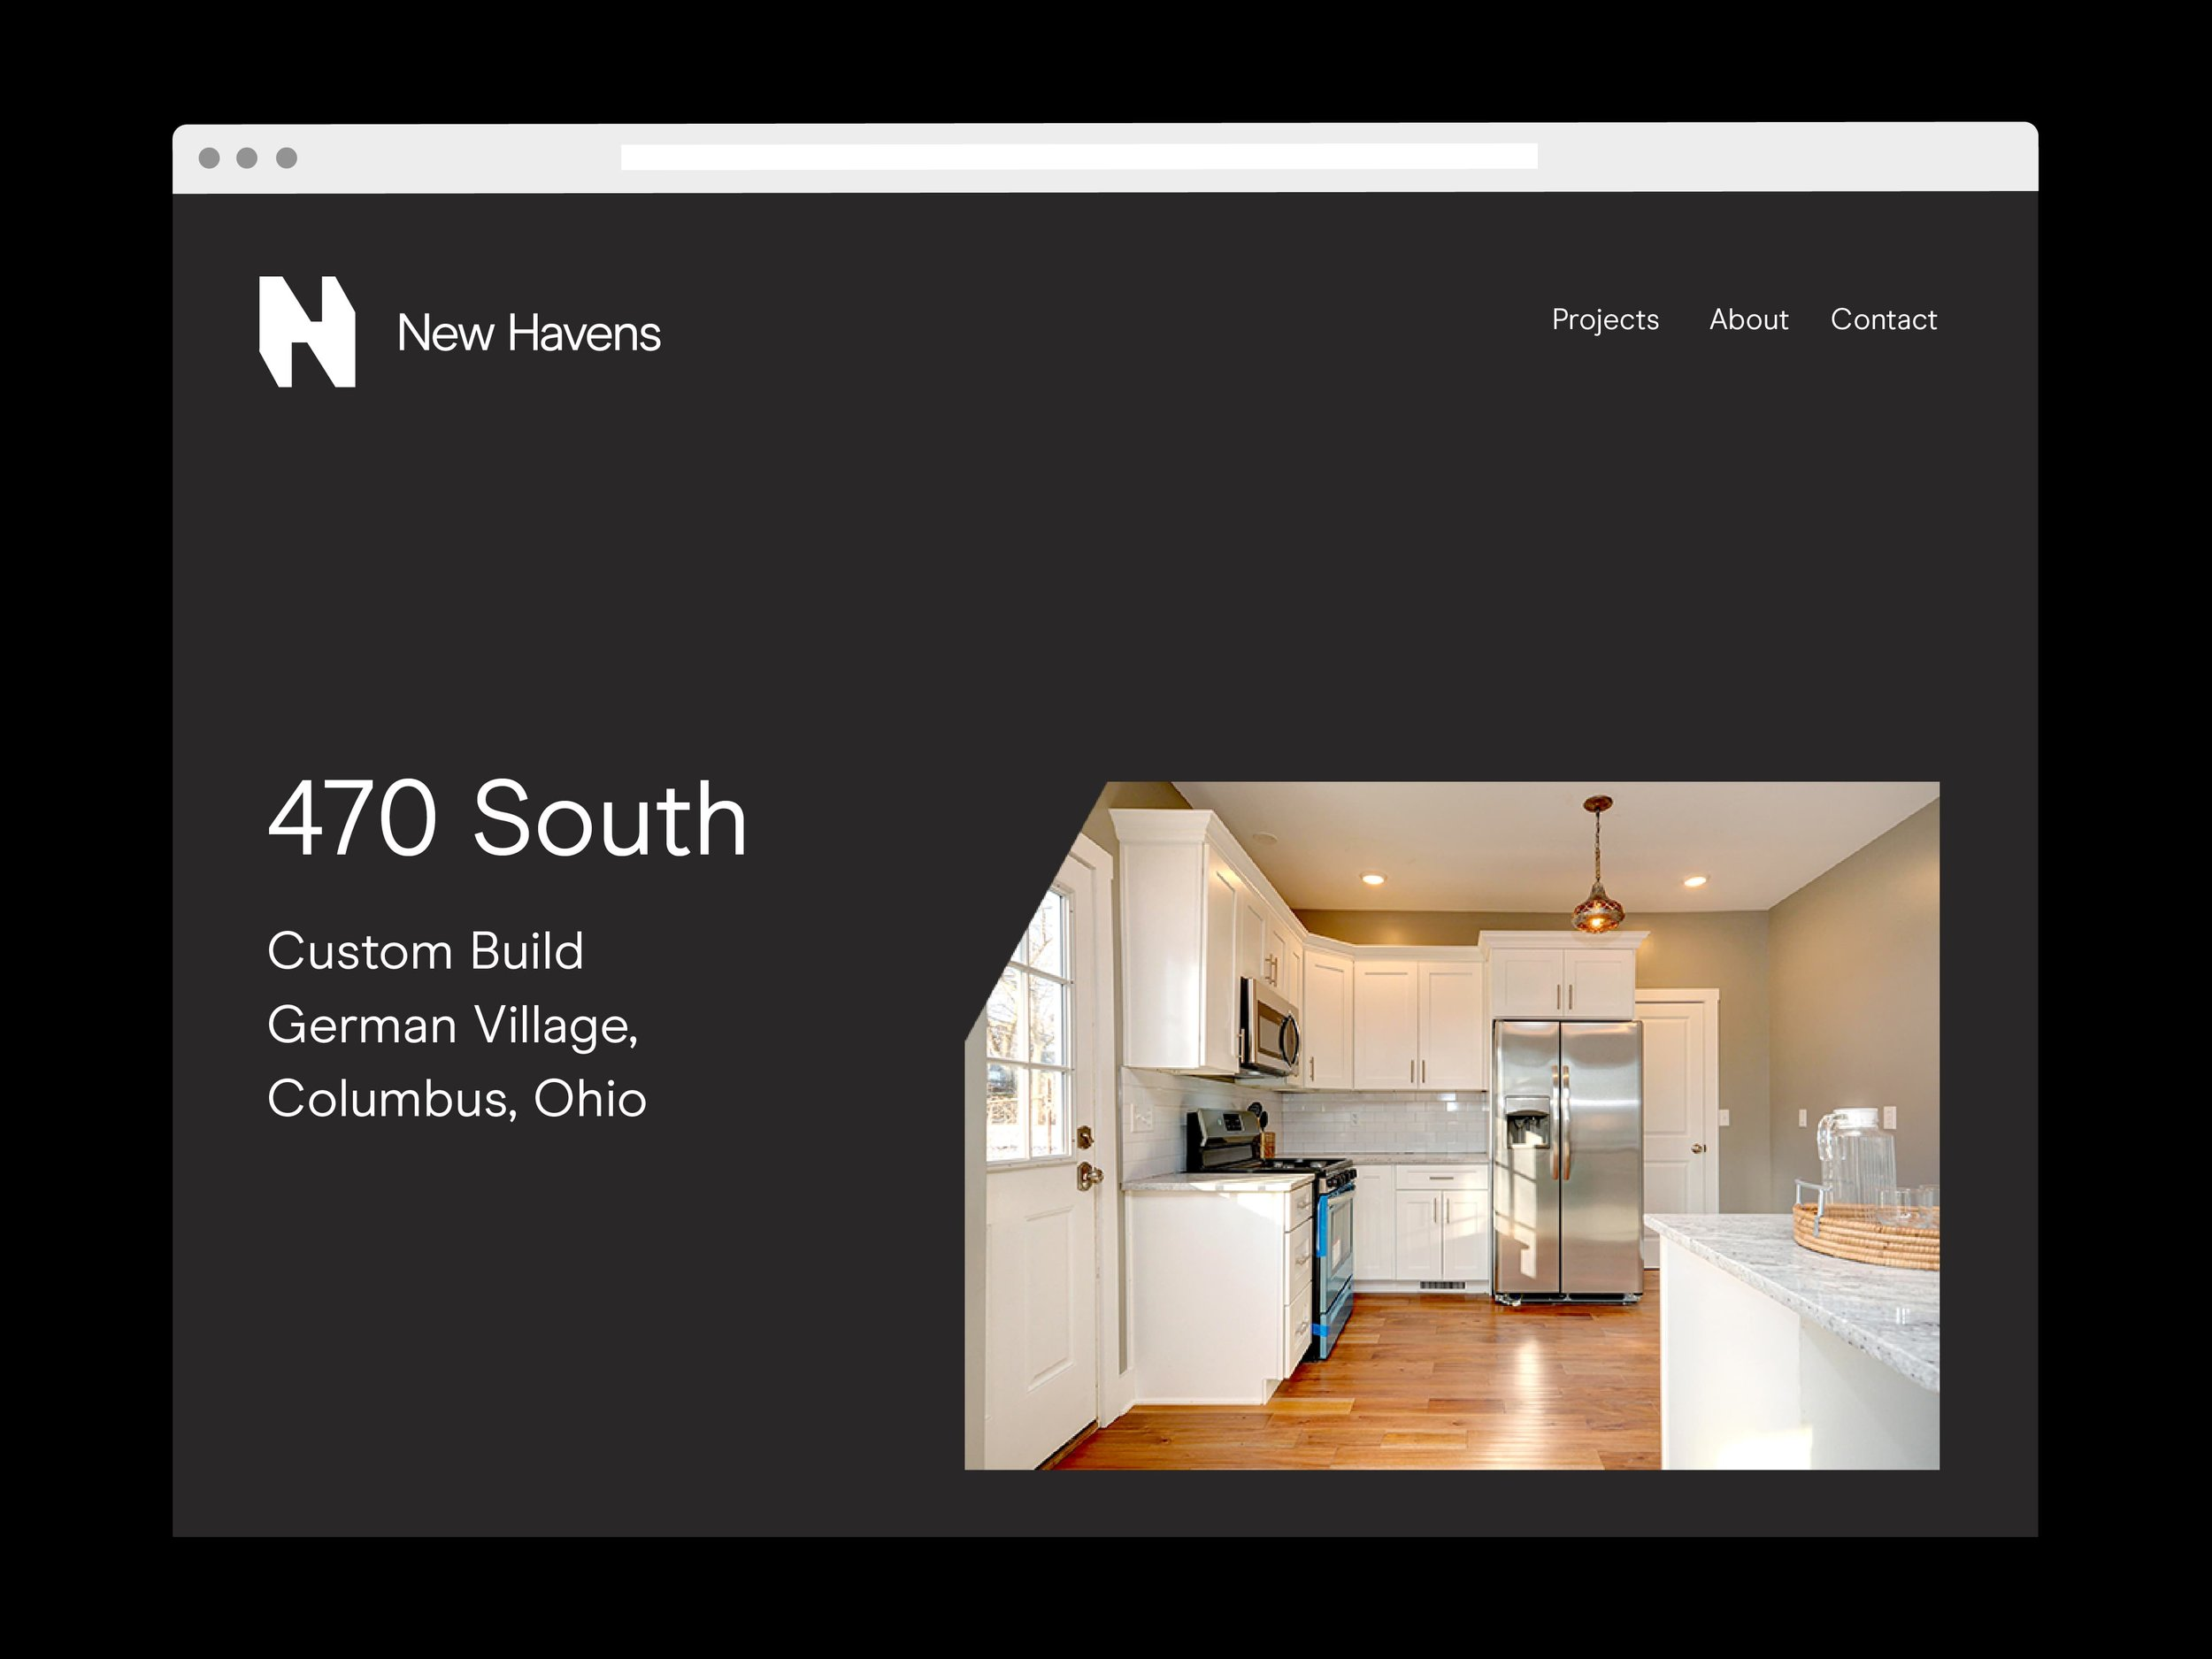 Studio Freight - New Havens Website Project Page